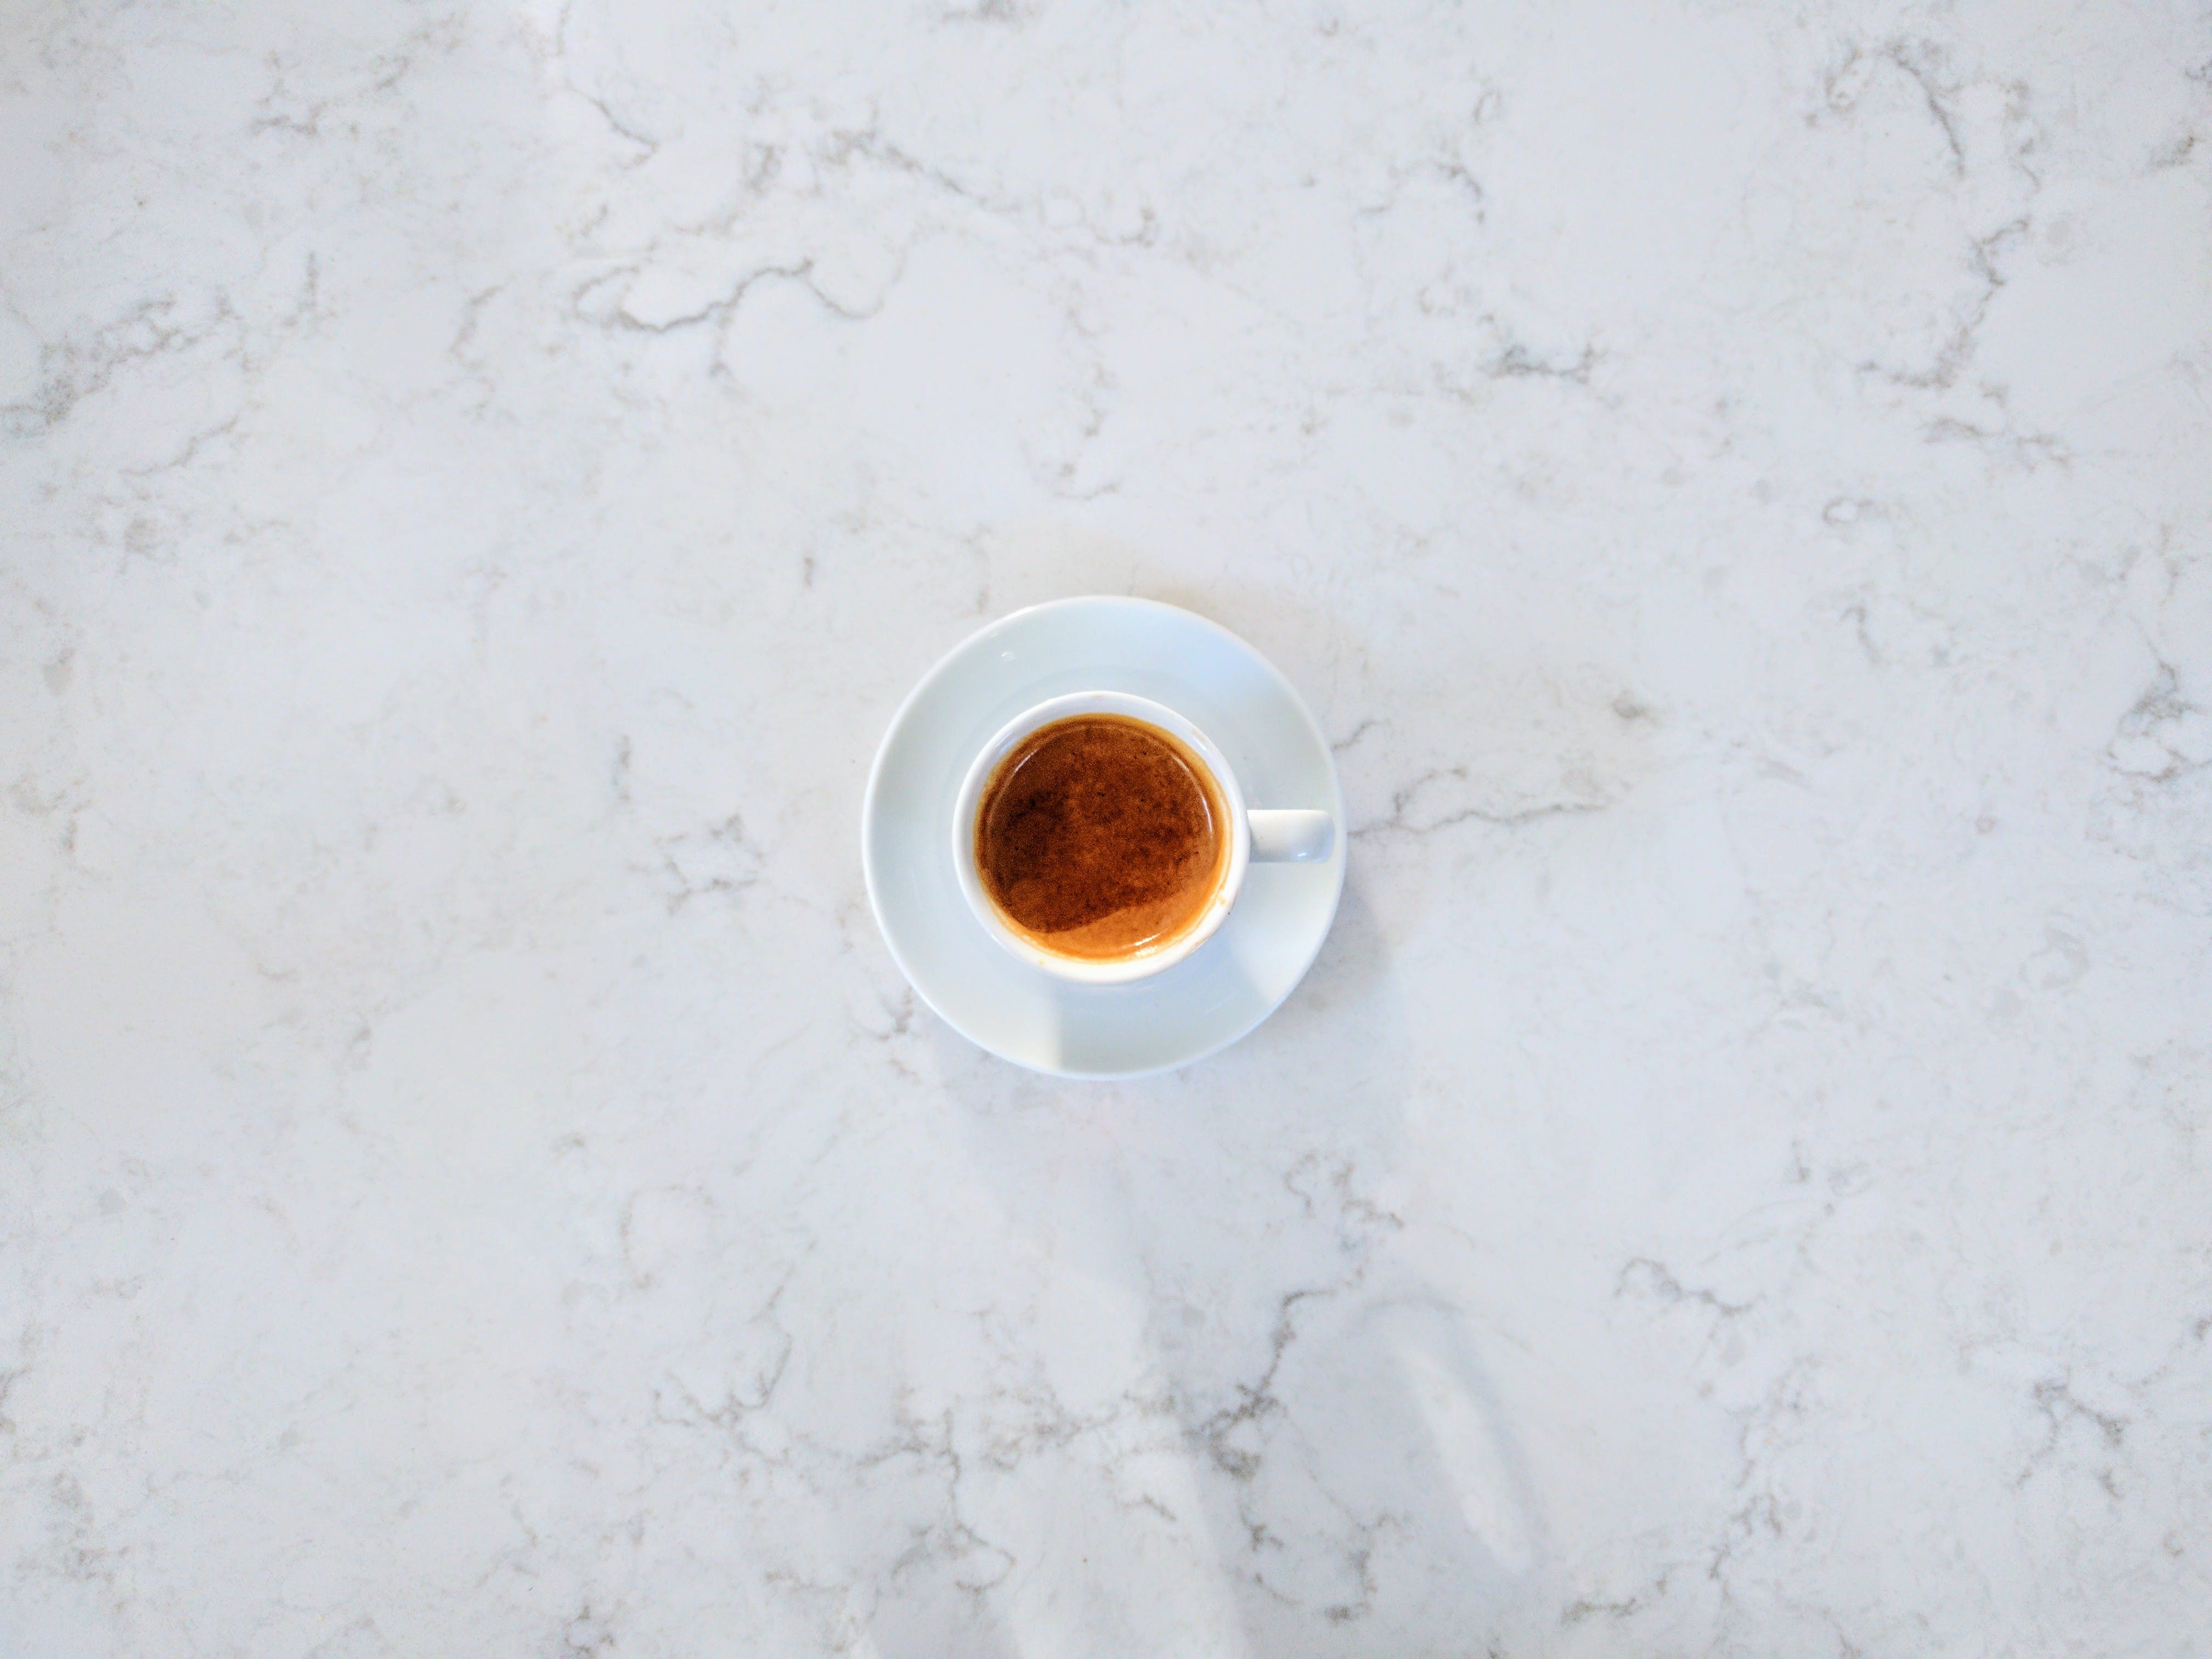 Free stock photo of coffee, espresso, marble, shadow